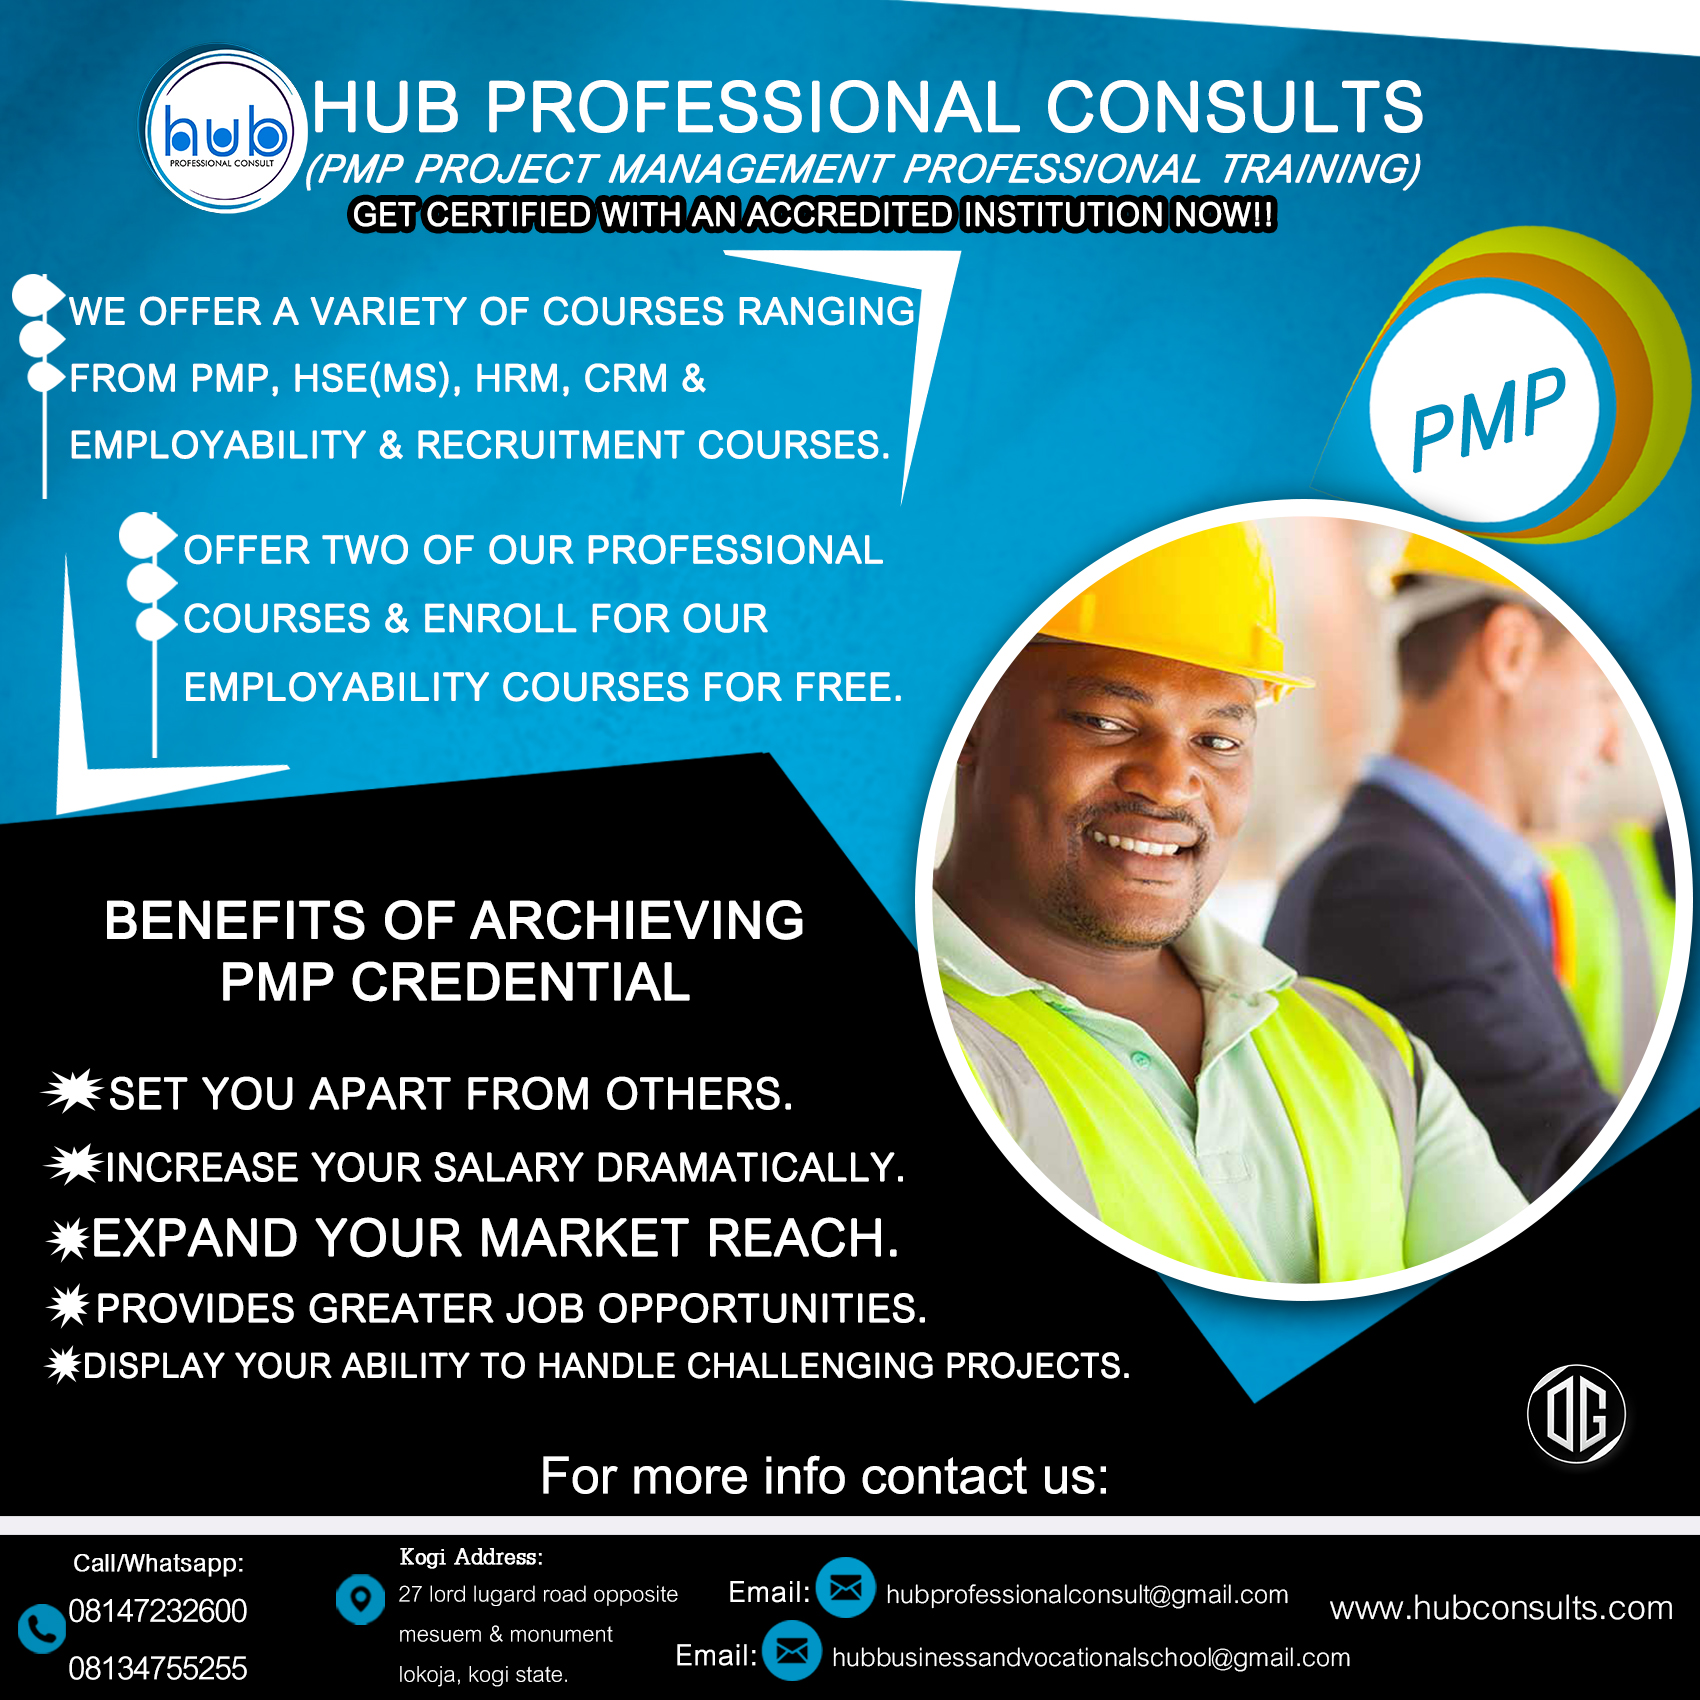 Indoor Our Professional Course Our Professional Course Hub Professional Consult Opposite Professional Worker Professional Relationship Opposite dpreview Opposite Of Professional